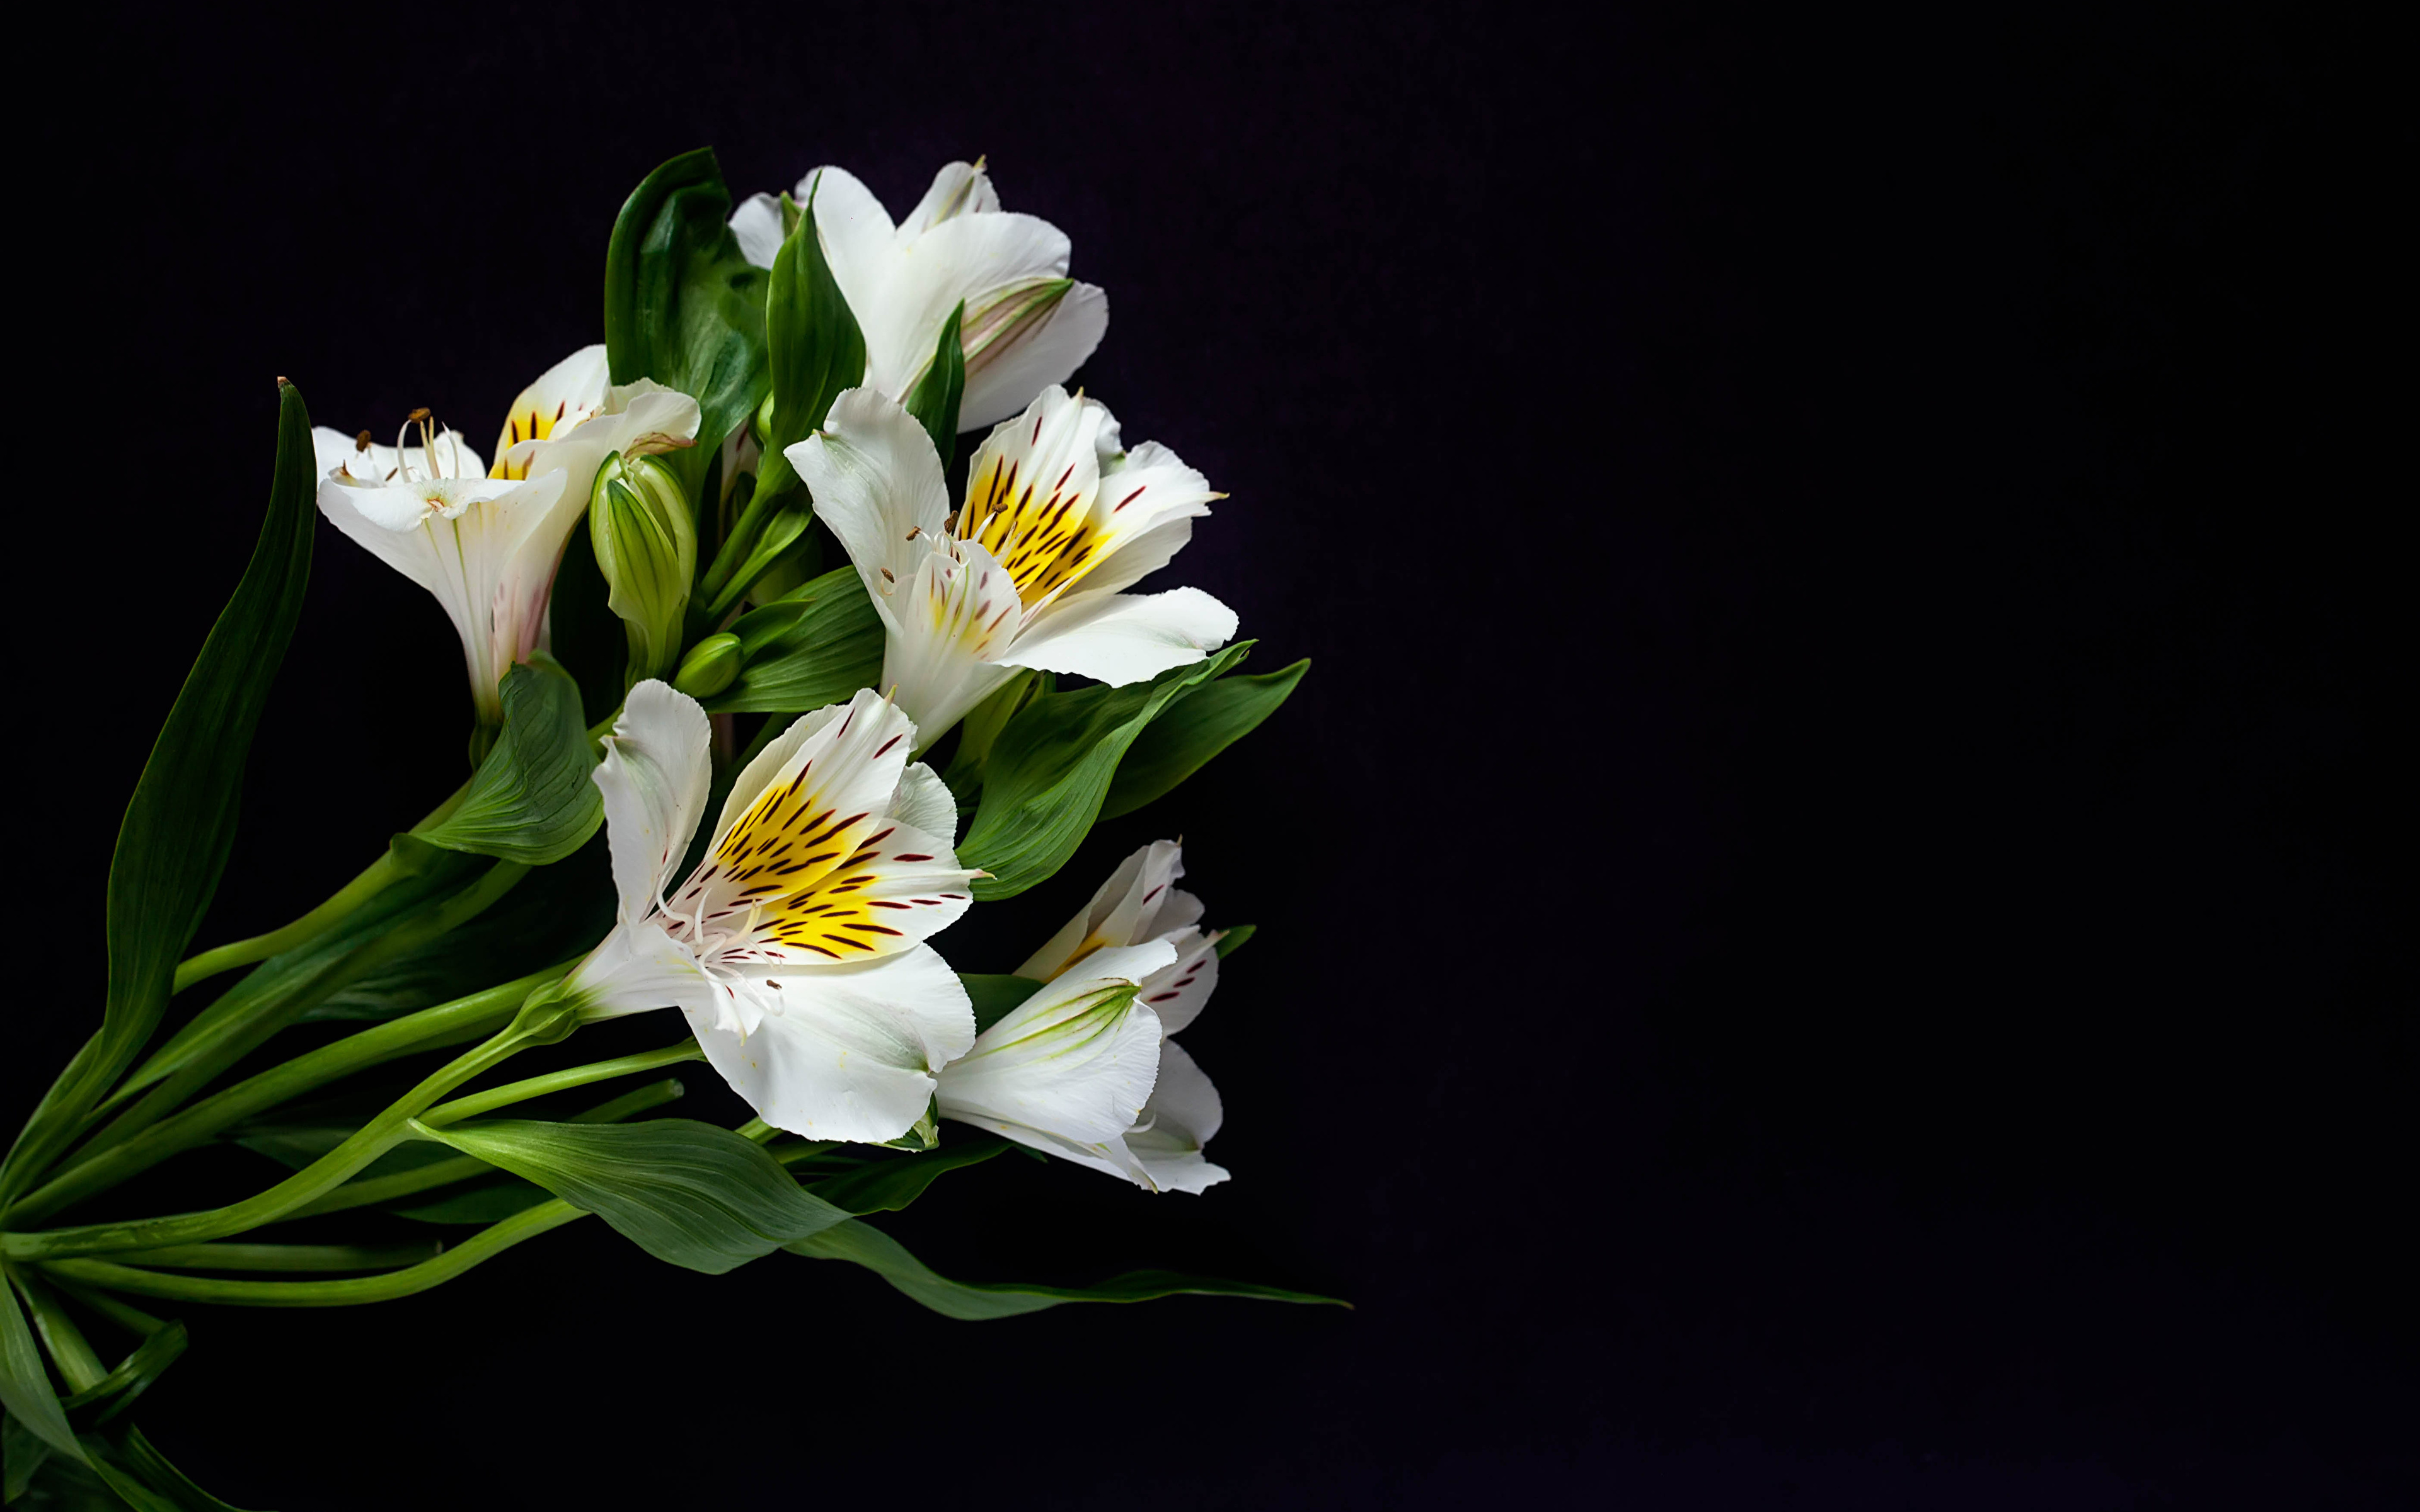 Images White Flower Alstroemeria Black Background 3840x2400